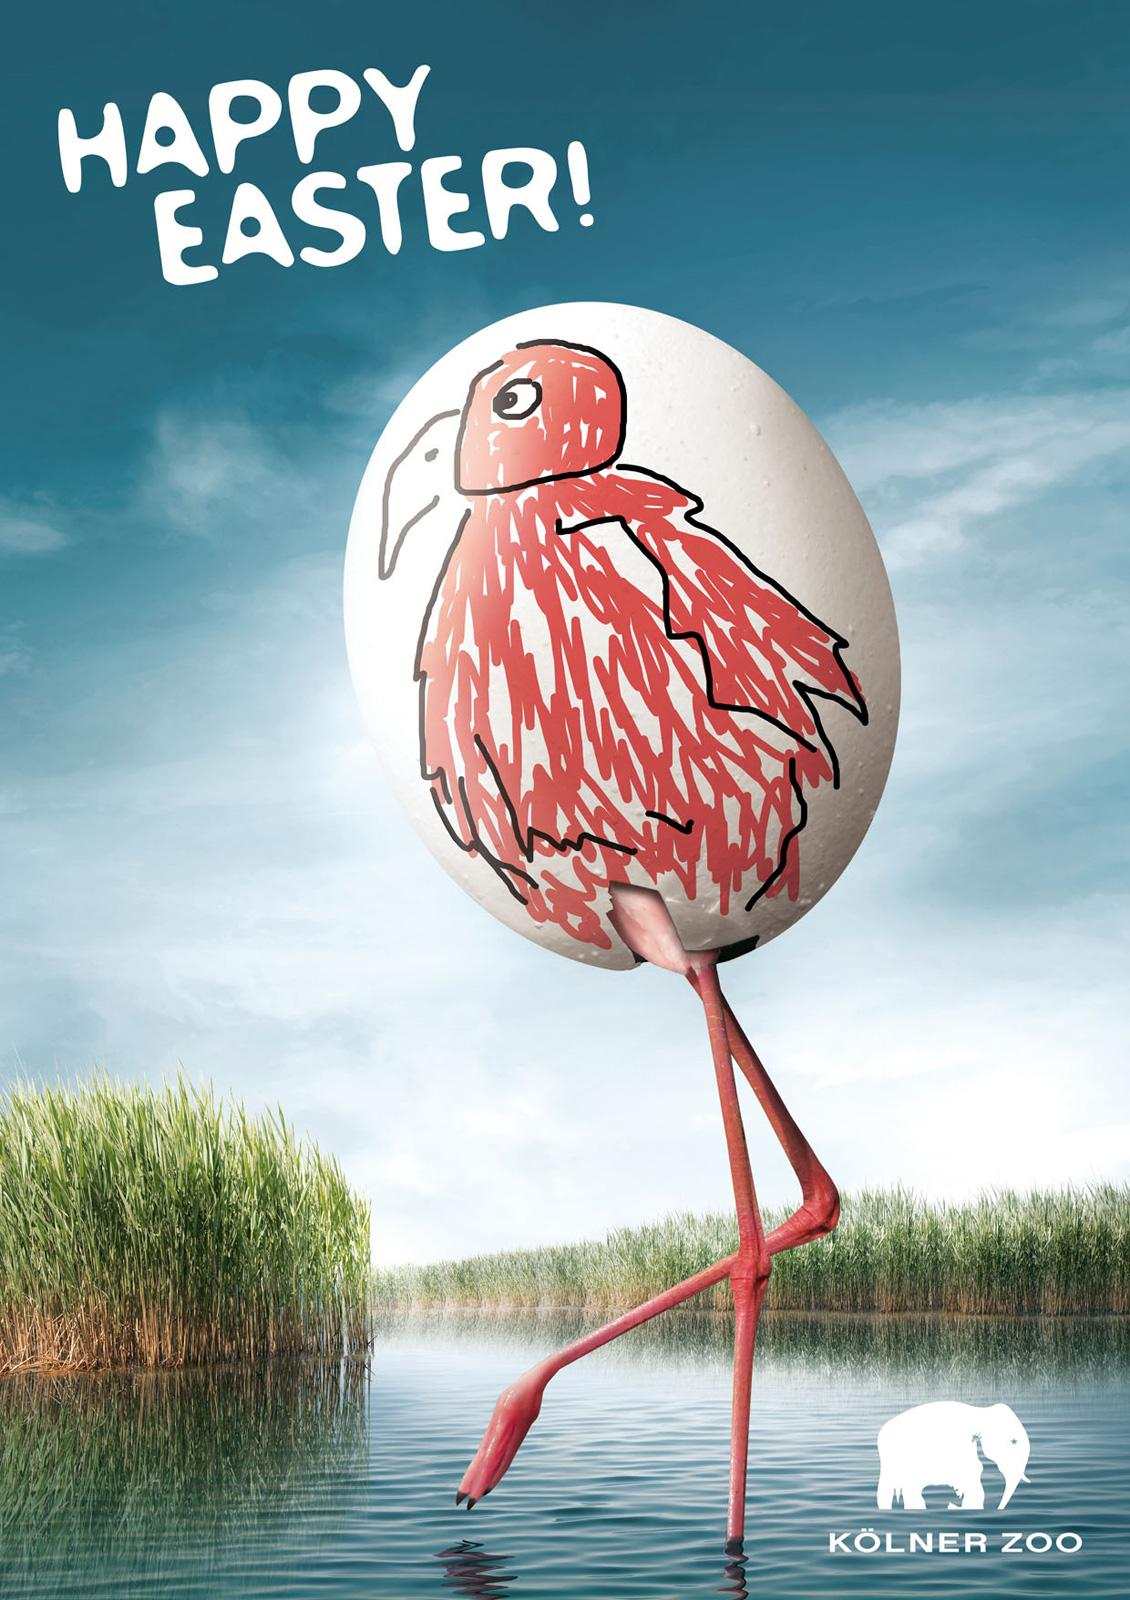 Kölner Zoo Print Ad -  Happy Easter Eggs, Flamingo